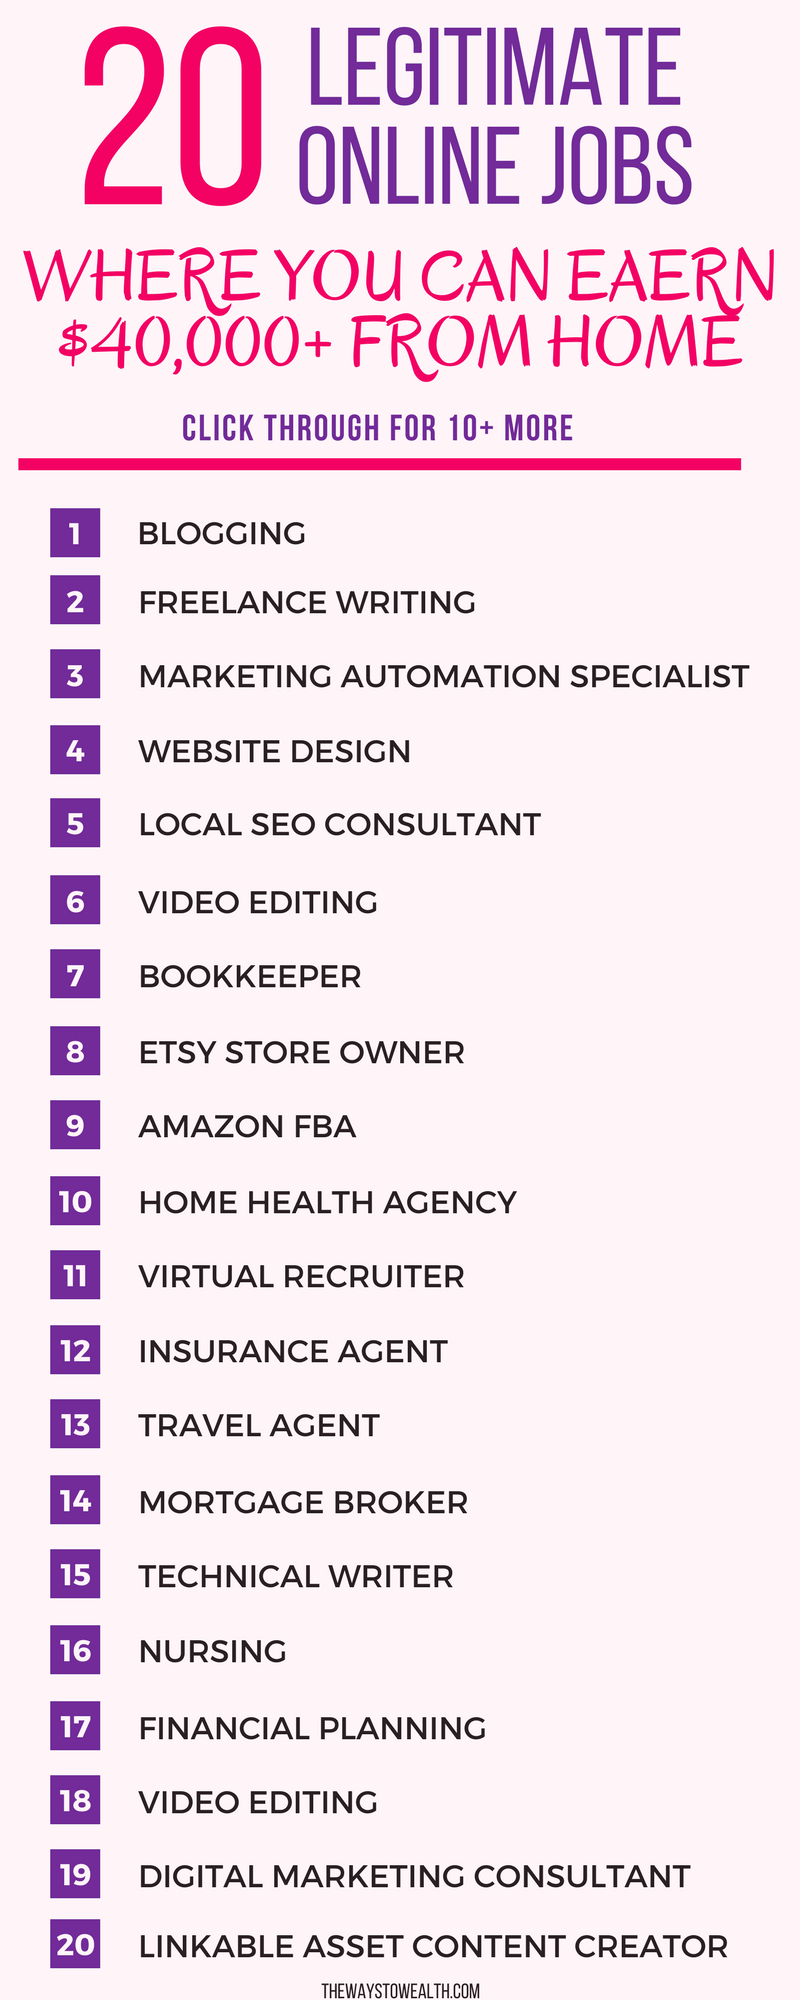 33 Legit Online Jobs Where You Can Earn $40,000+ From Home | Legit ...